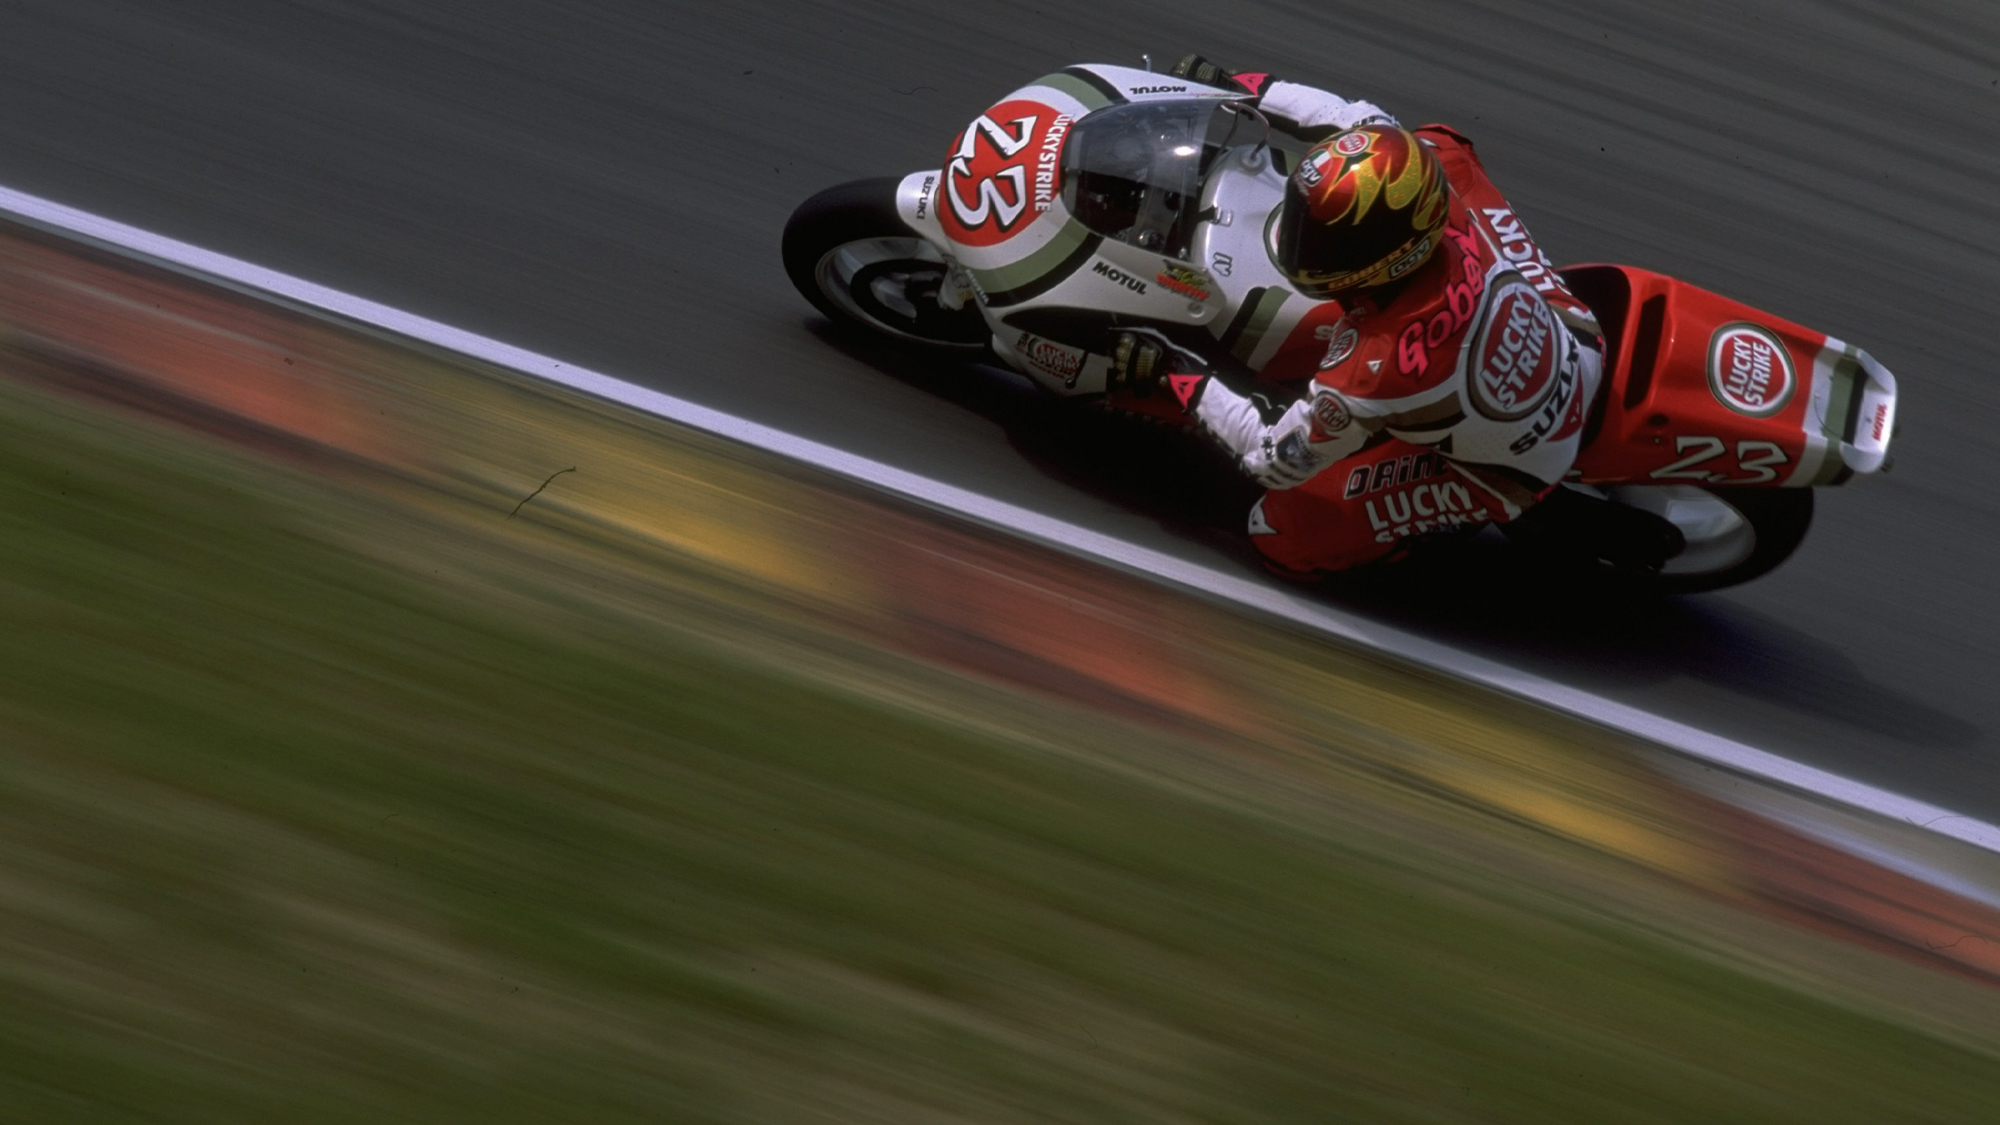 Anthony Gobert at the 1997 Italian Motorcycle Grand Prix